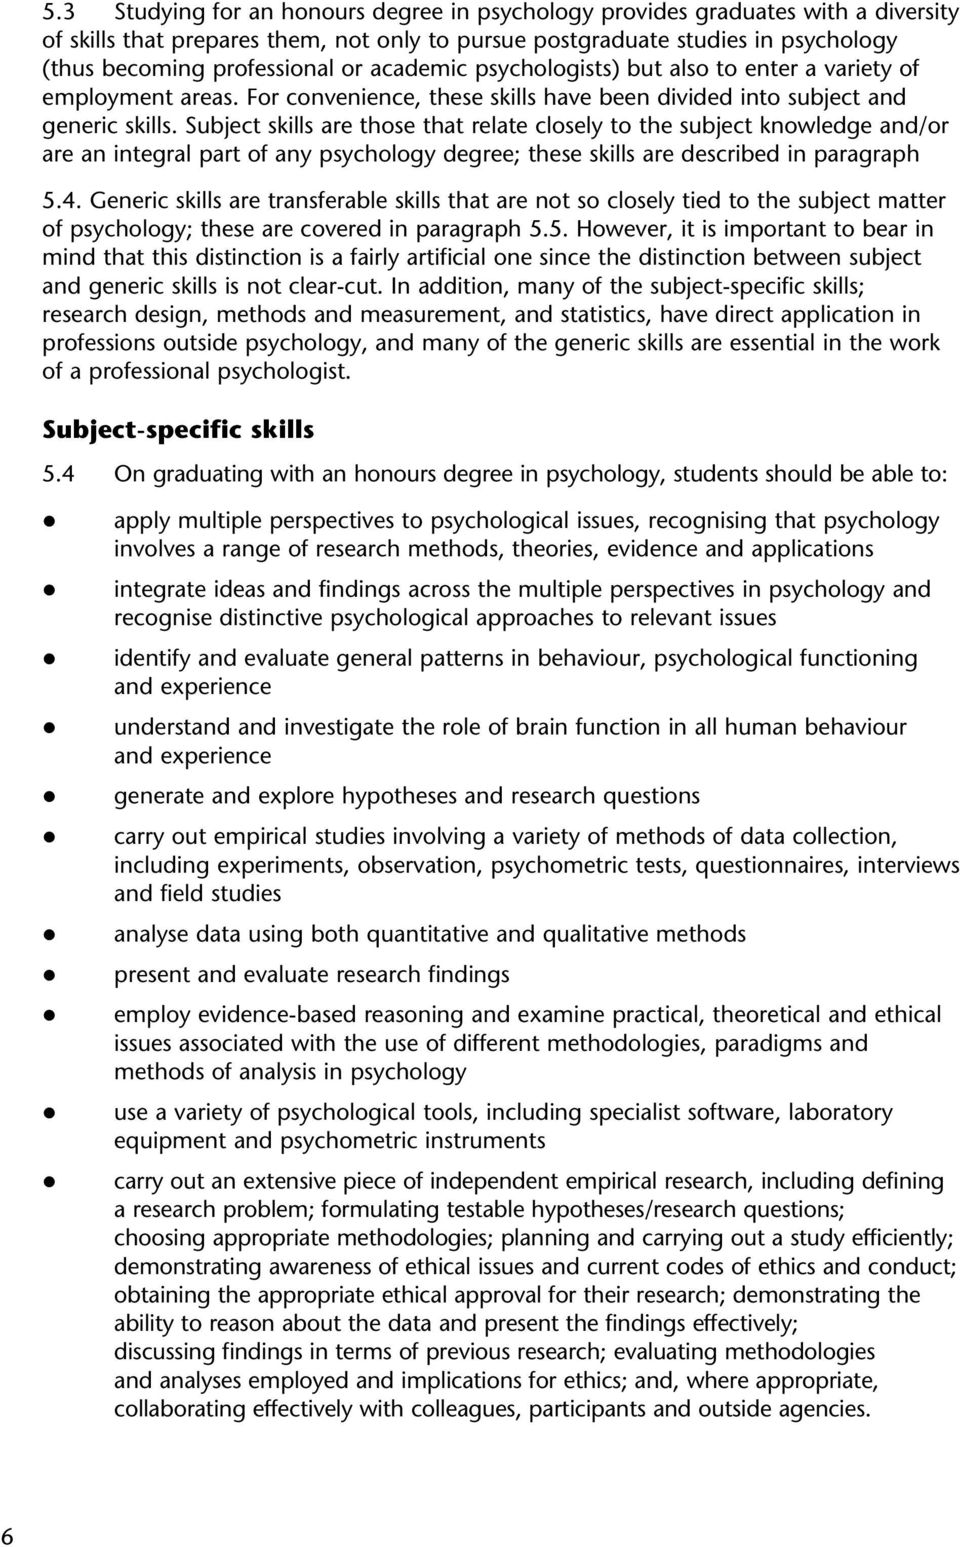 Subject skills are those that relate closely to the subject knowledge and/or are an integral part of any psychology degree; these skills are described in paragraph 5.4.